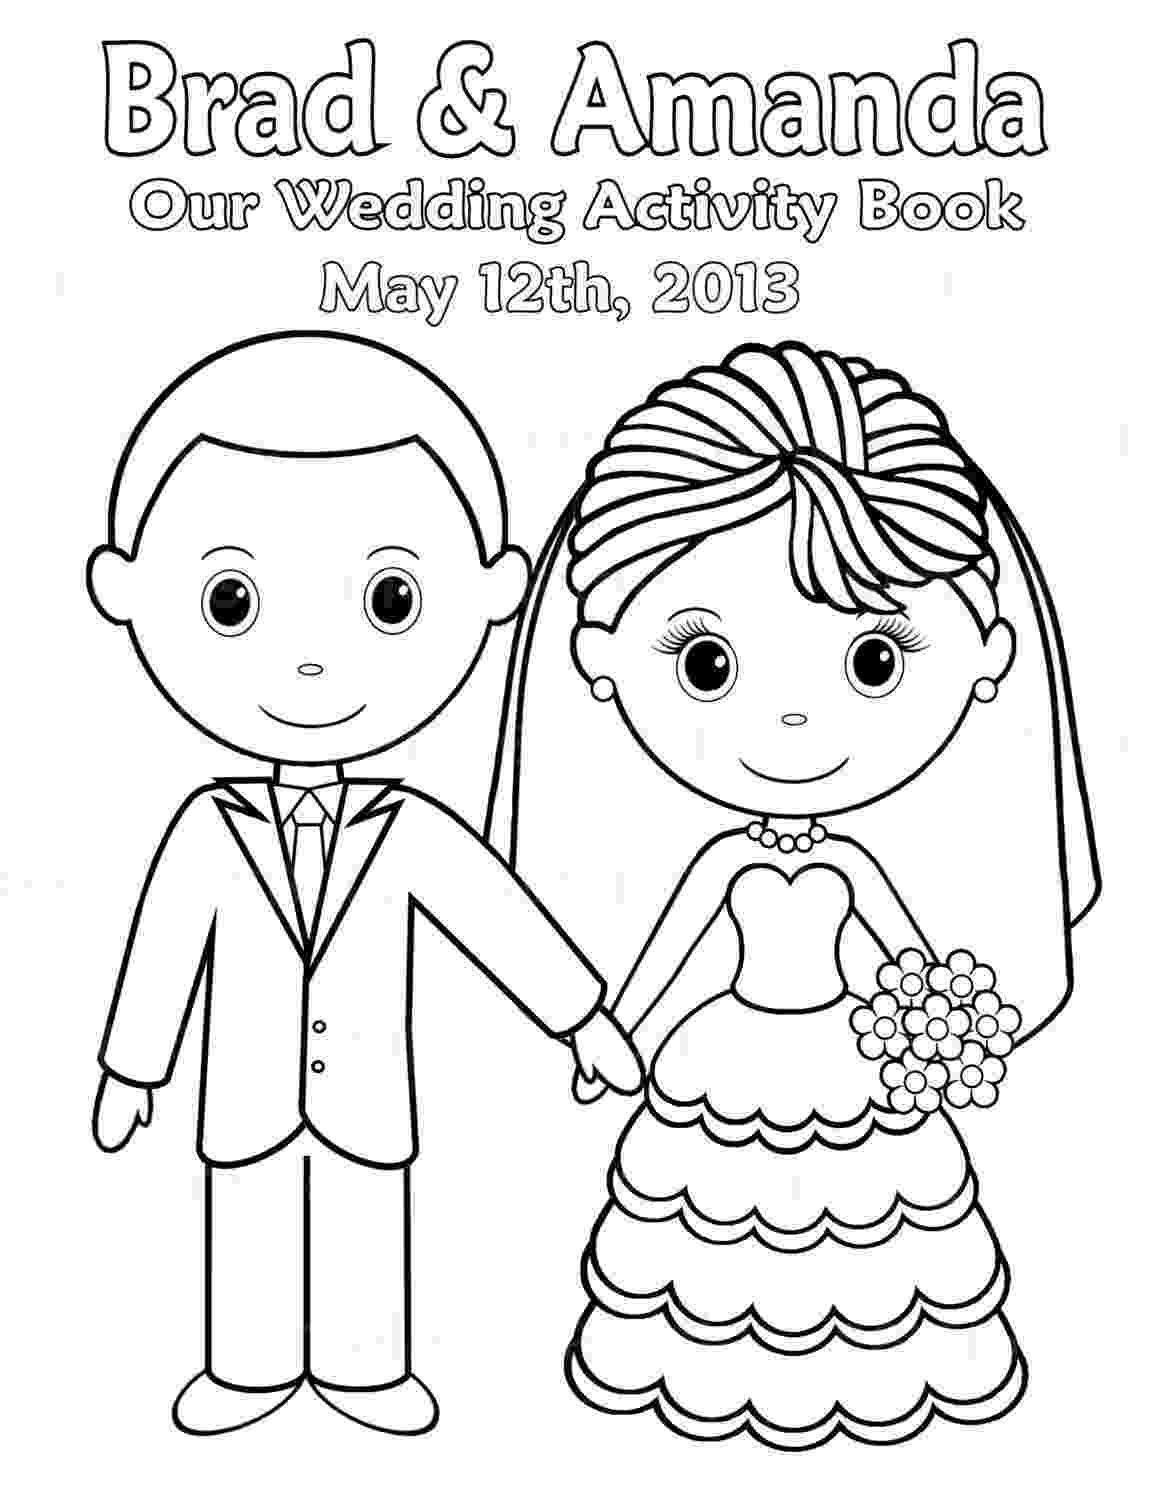 free wedding coloring pages to print 17 wedding coloring pages for kids who love to dream about pages to wedding print coloring free